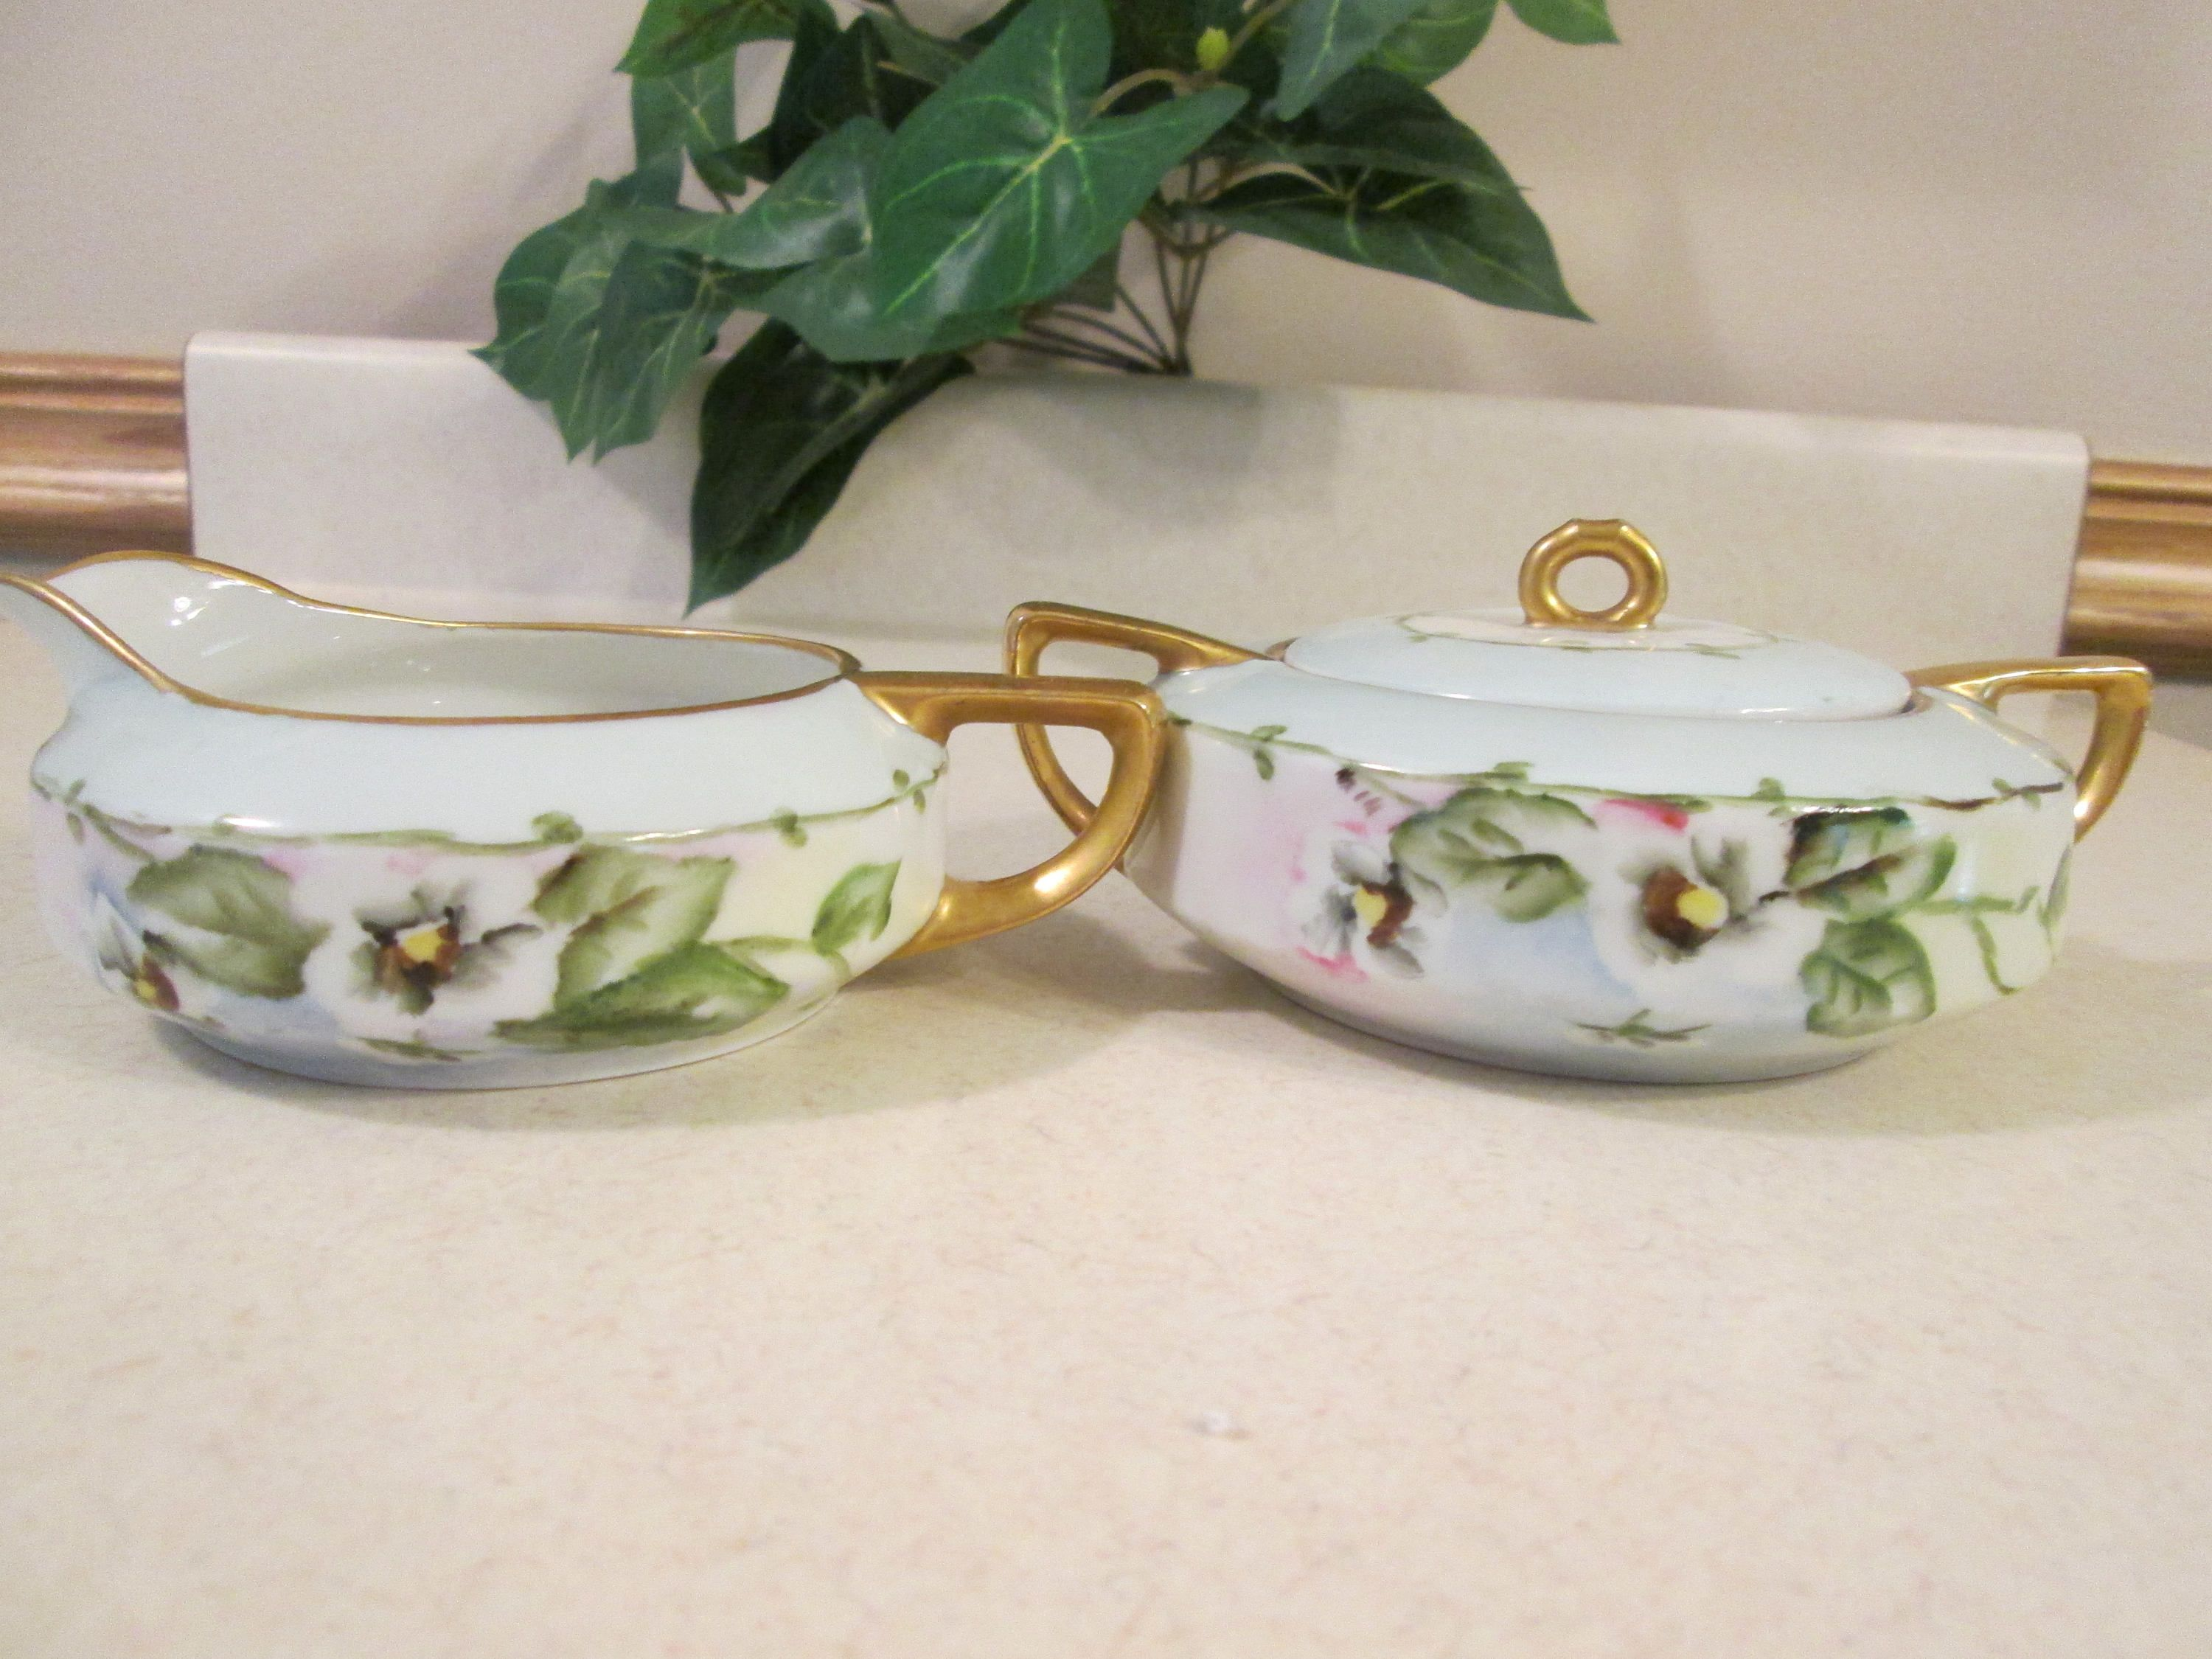 Vintage Oscar U0026 Edger Gutherz Sugar Bowl And Creamer, Royal Austria Sugr  Bowl And Creamer, Kitchen Serving Pieces, O.E. G Sugar Bowl